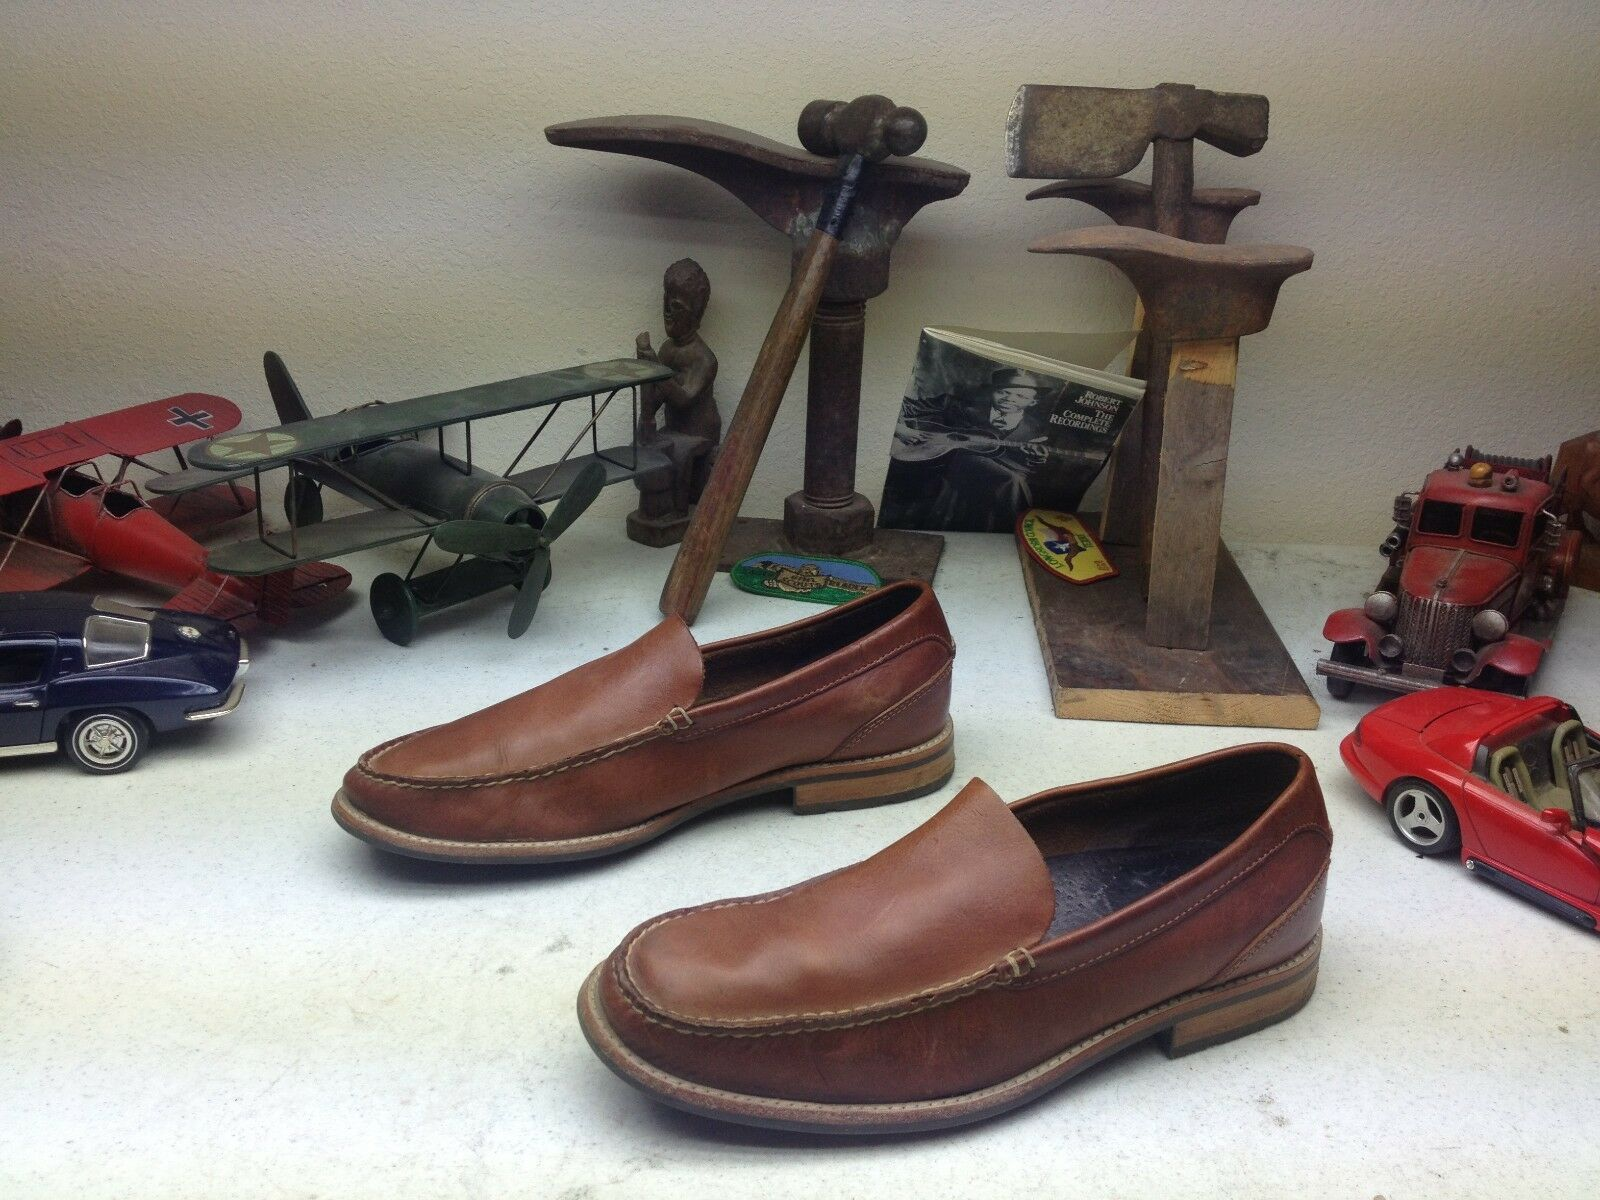 Scarpe casual da uomo TOP SIDER SPERRY COOL BROWN LEATHER SLIP ON BOAT DECK SATURDAY SUMMER SHOES 10M